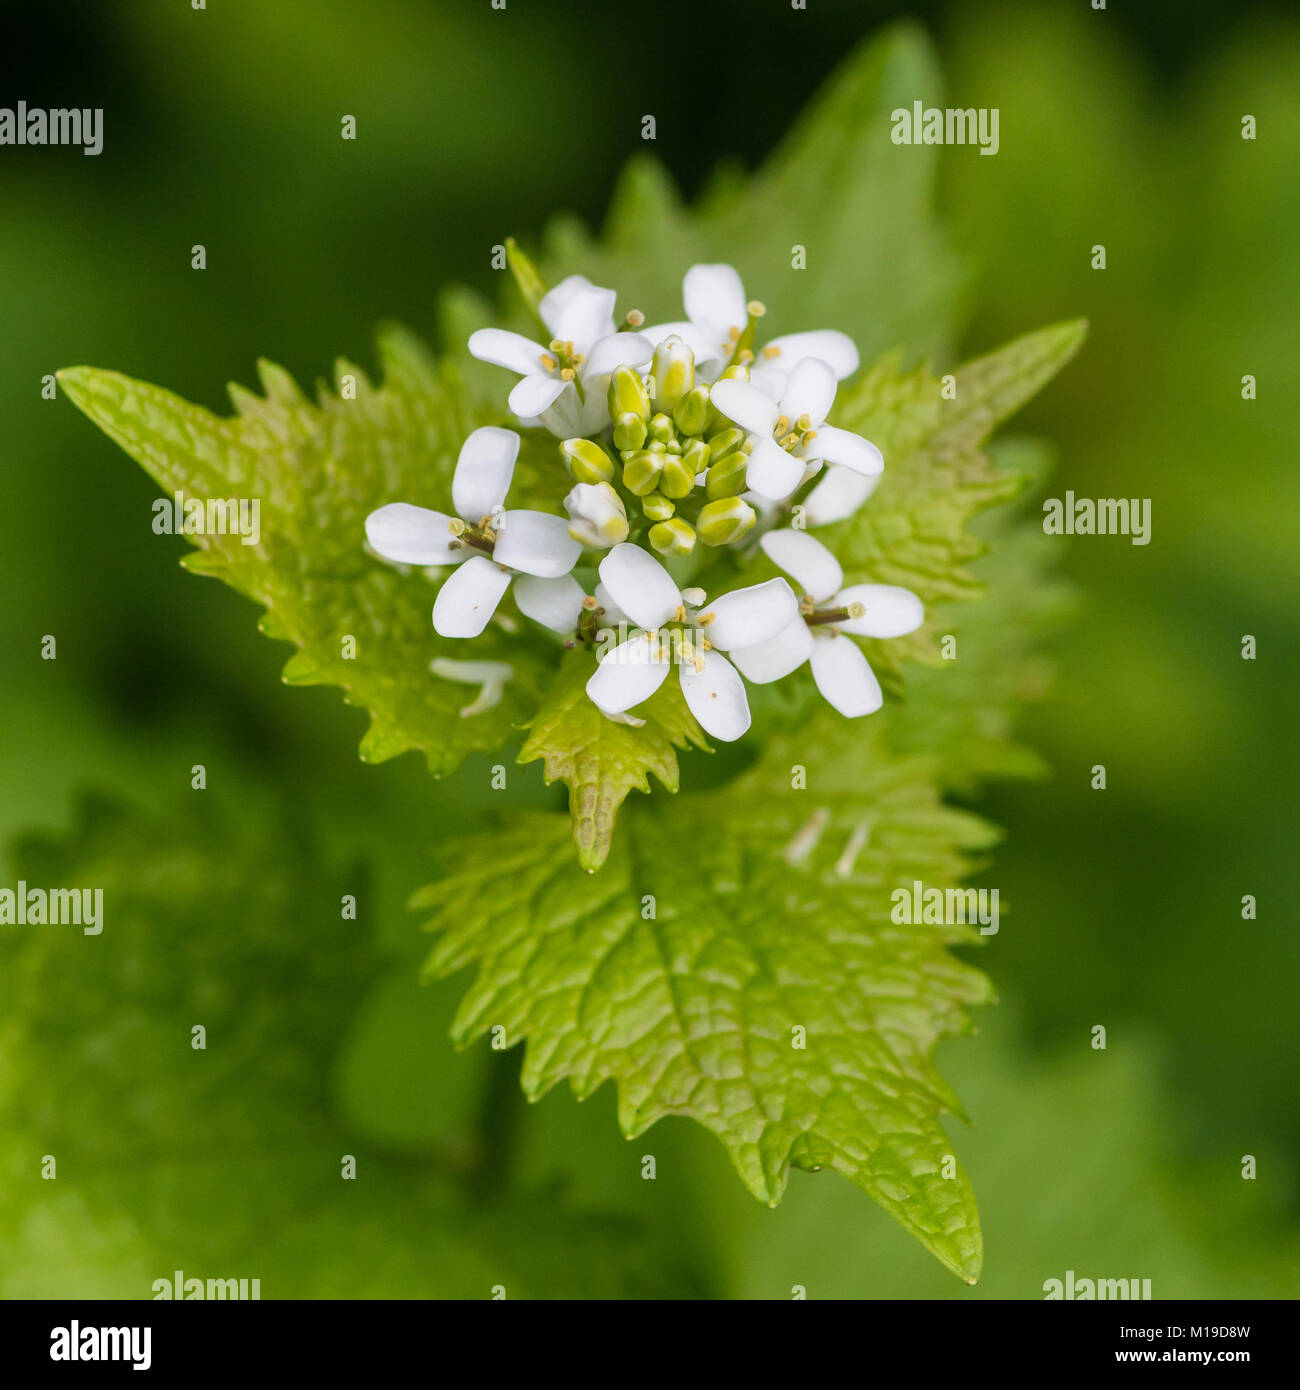 A Macro Shot Of The Pretty White Flowers Of A Garlic Mustard Plant